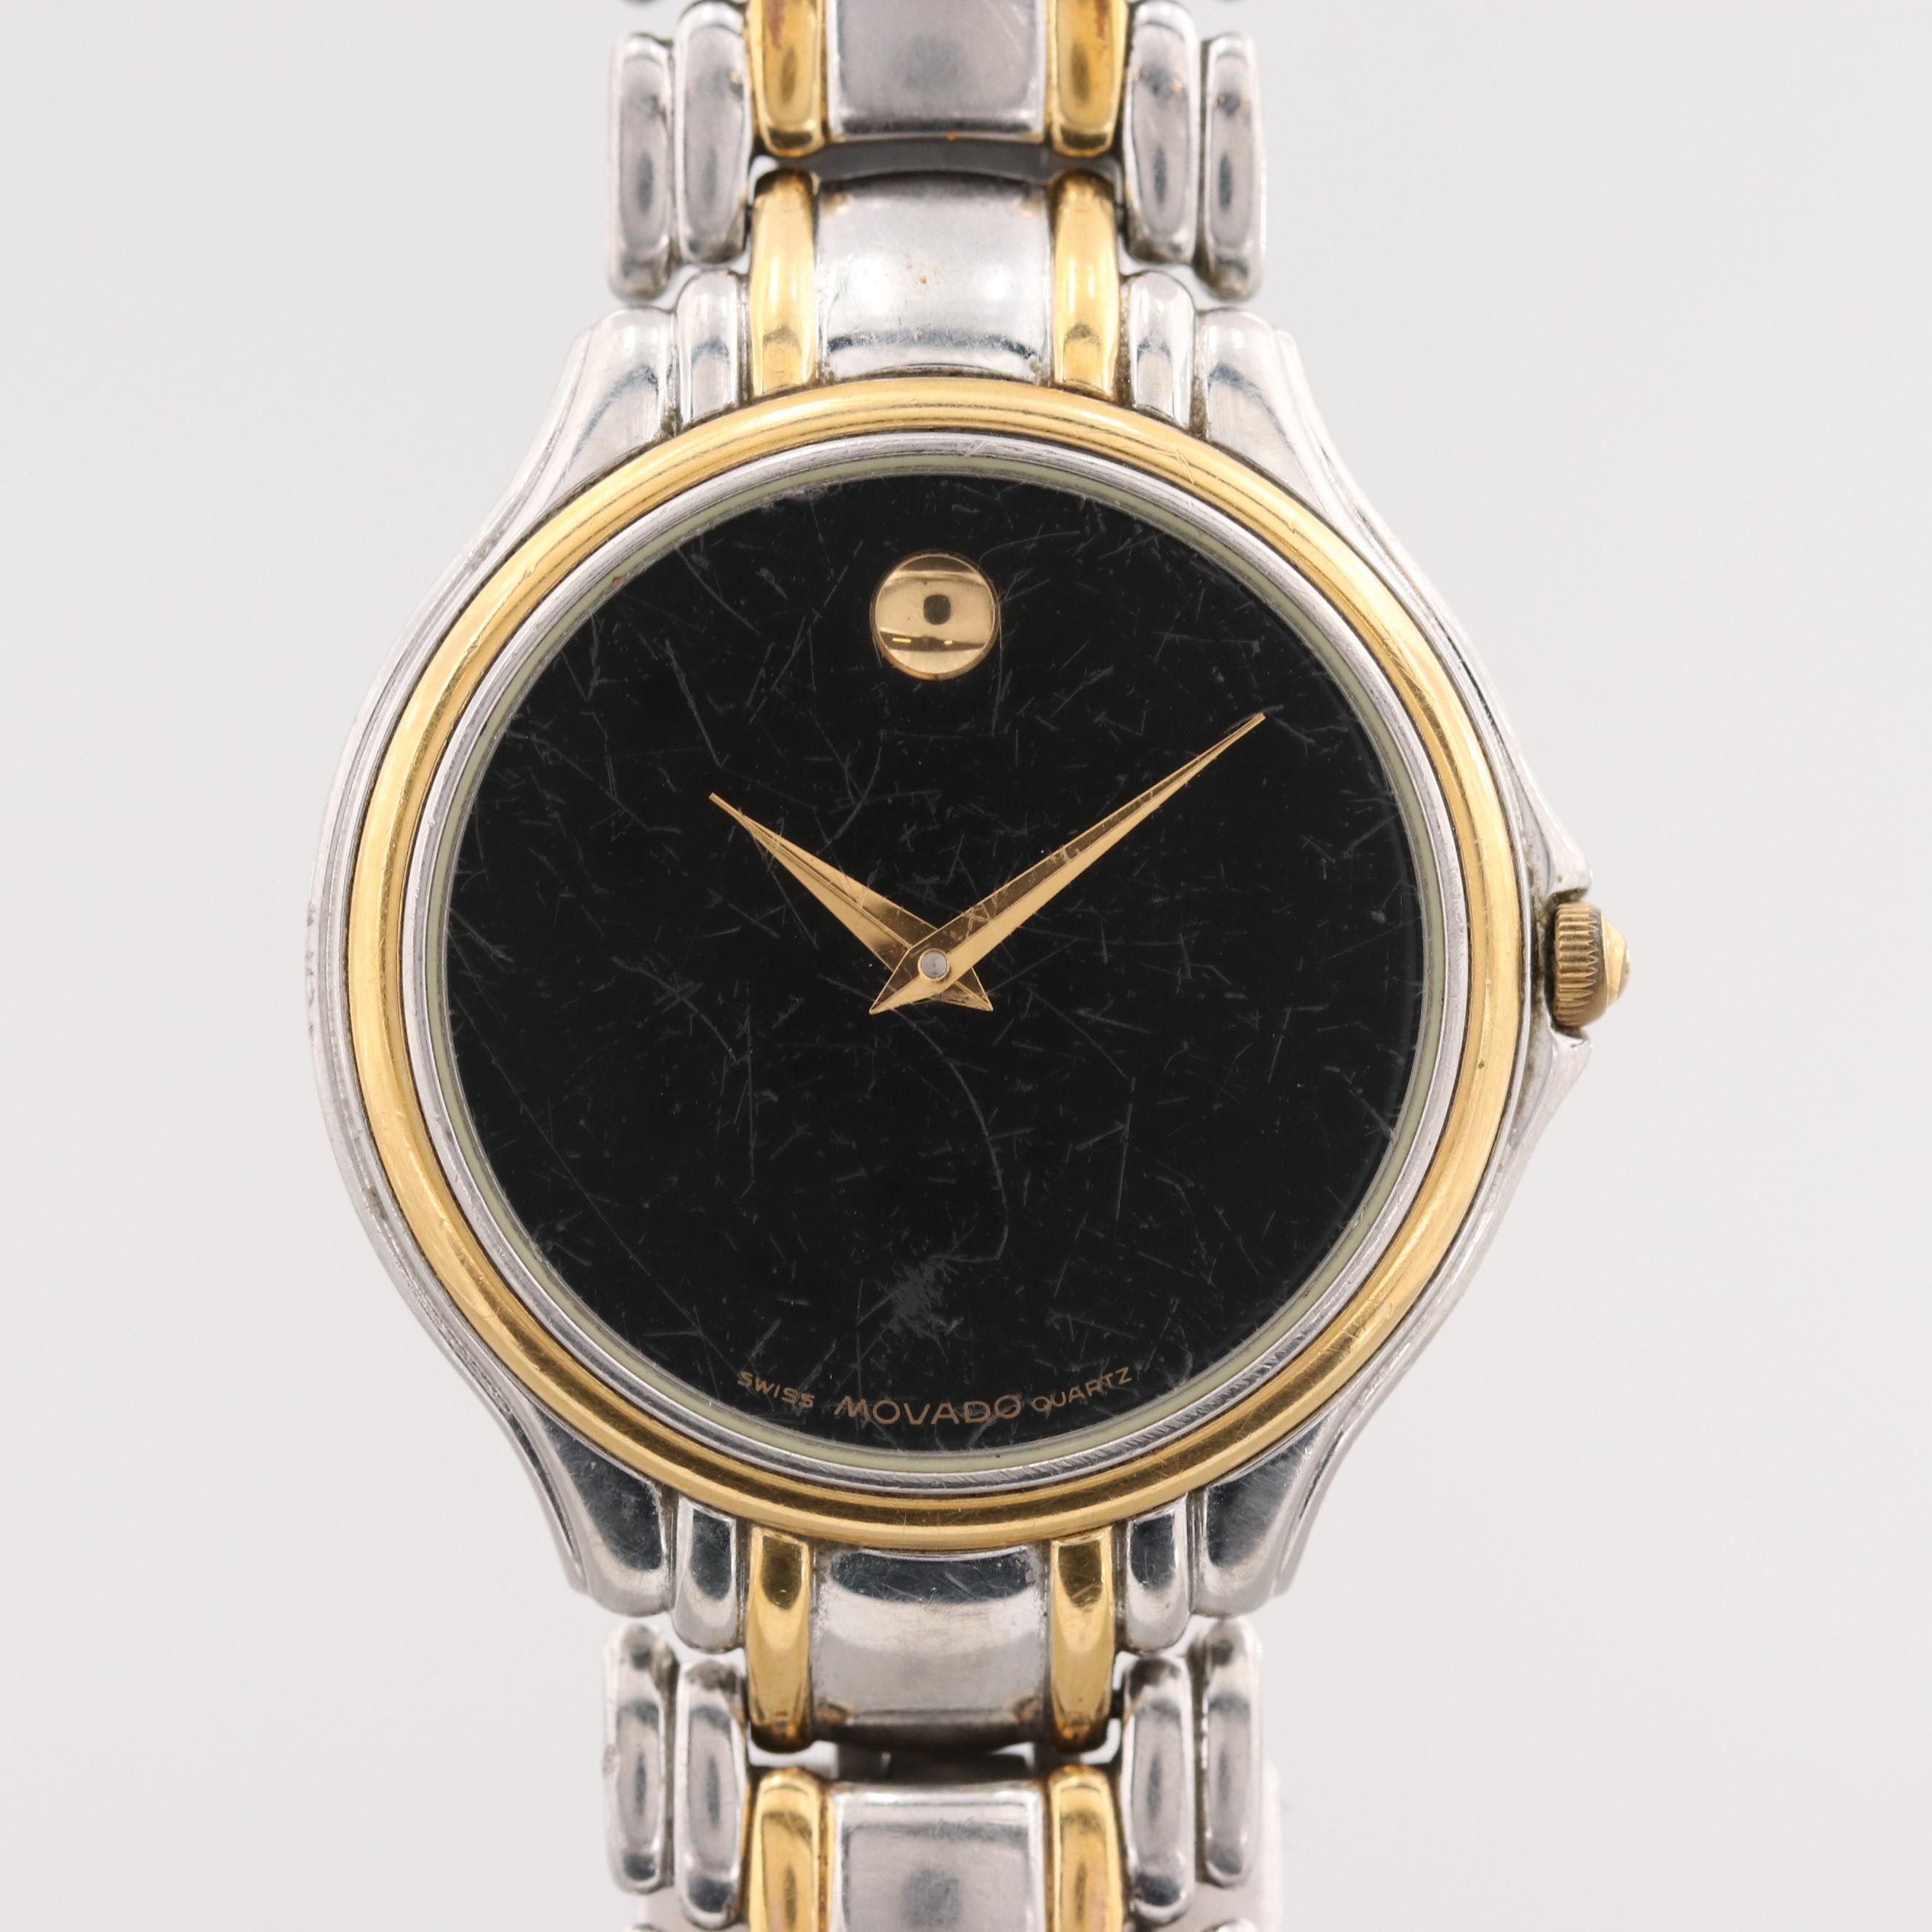 """Movado """"Museum Piece"""" Stainless Steel Wristwatch"""